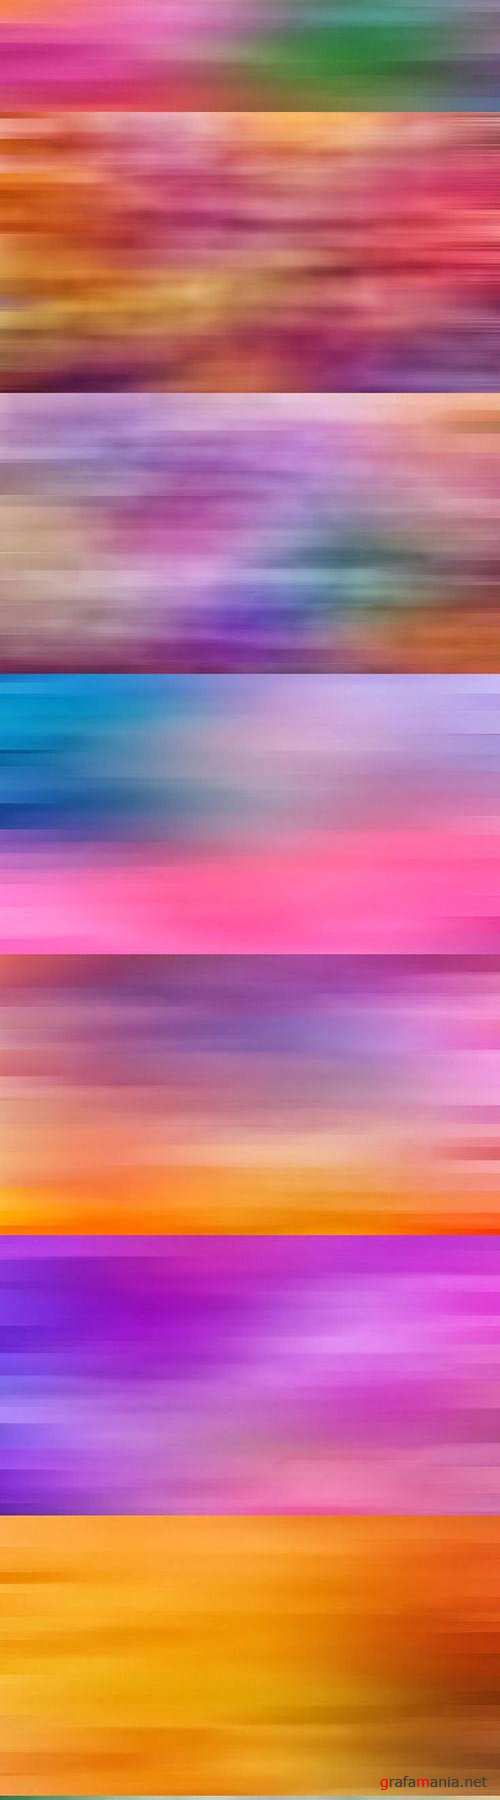 12 Motion Blur 8K Backgrounds For Website Or App